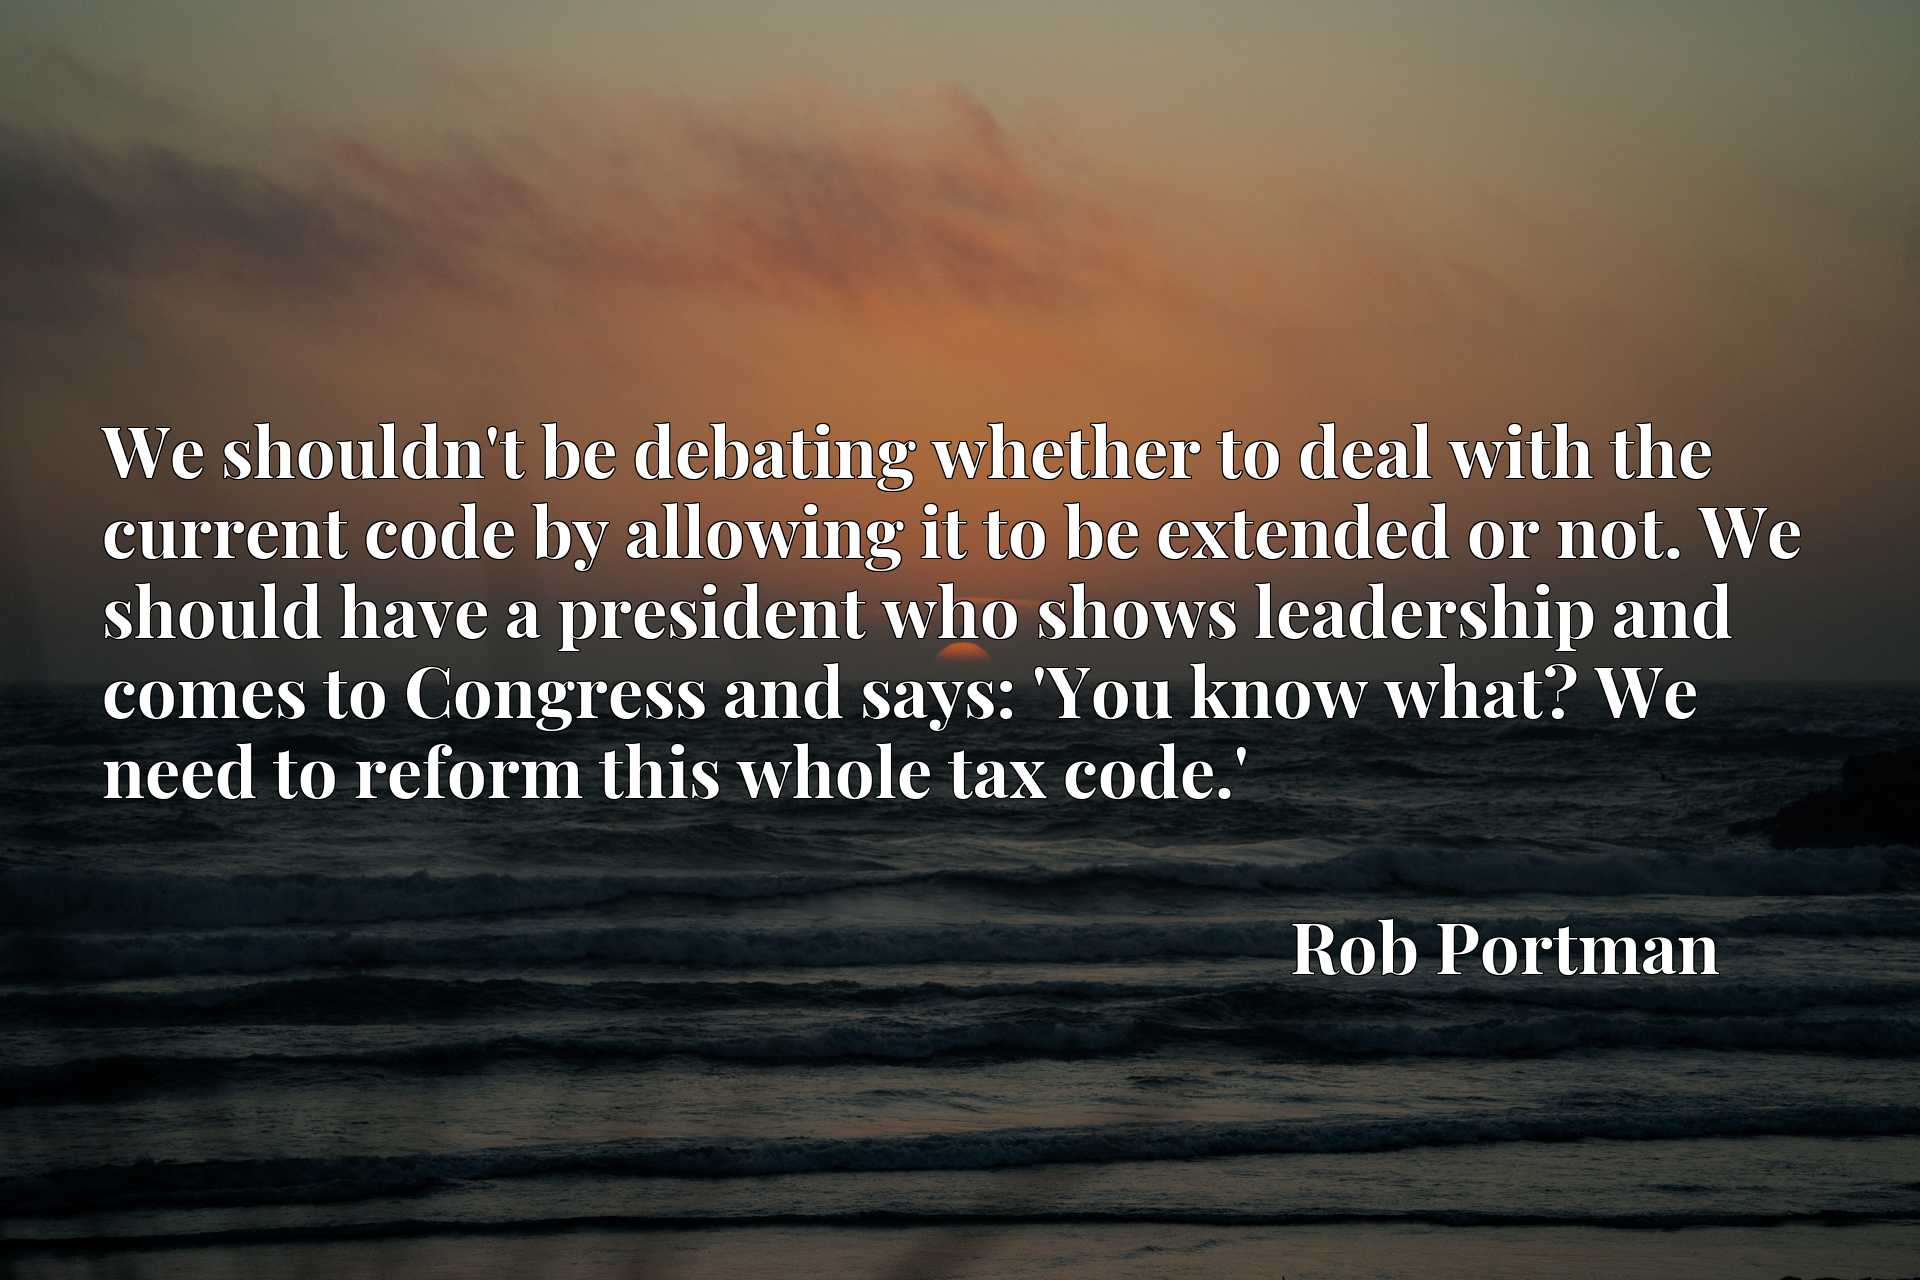 We shouldn't be debating whether to deal with the current code by allowing it to be extended or not. We should have a president who shows leadership and comes to Congress and says: 'You know what? We need to reform this whole tax code.'